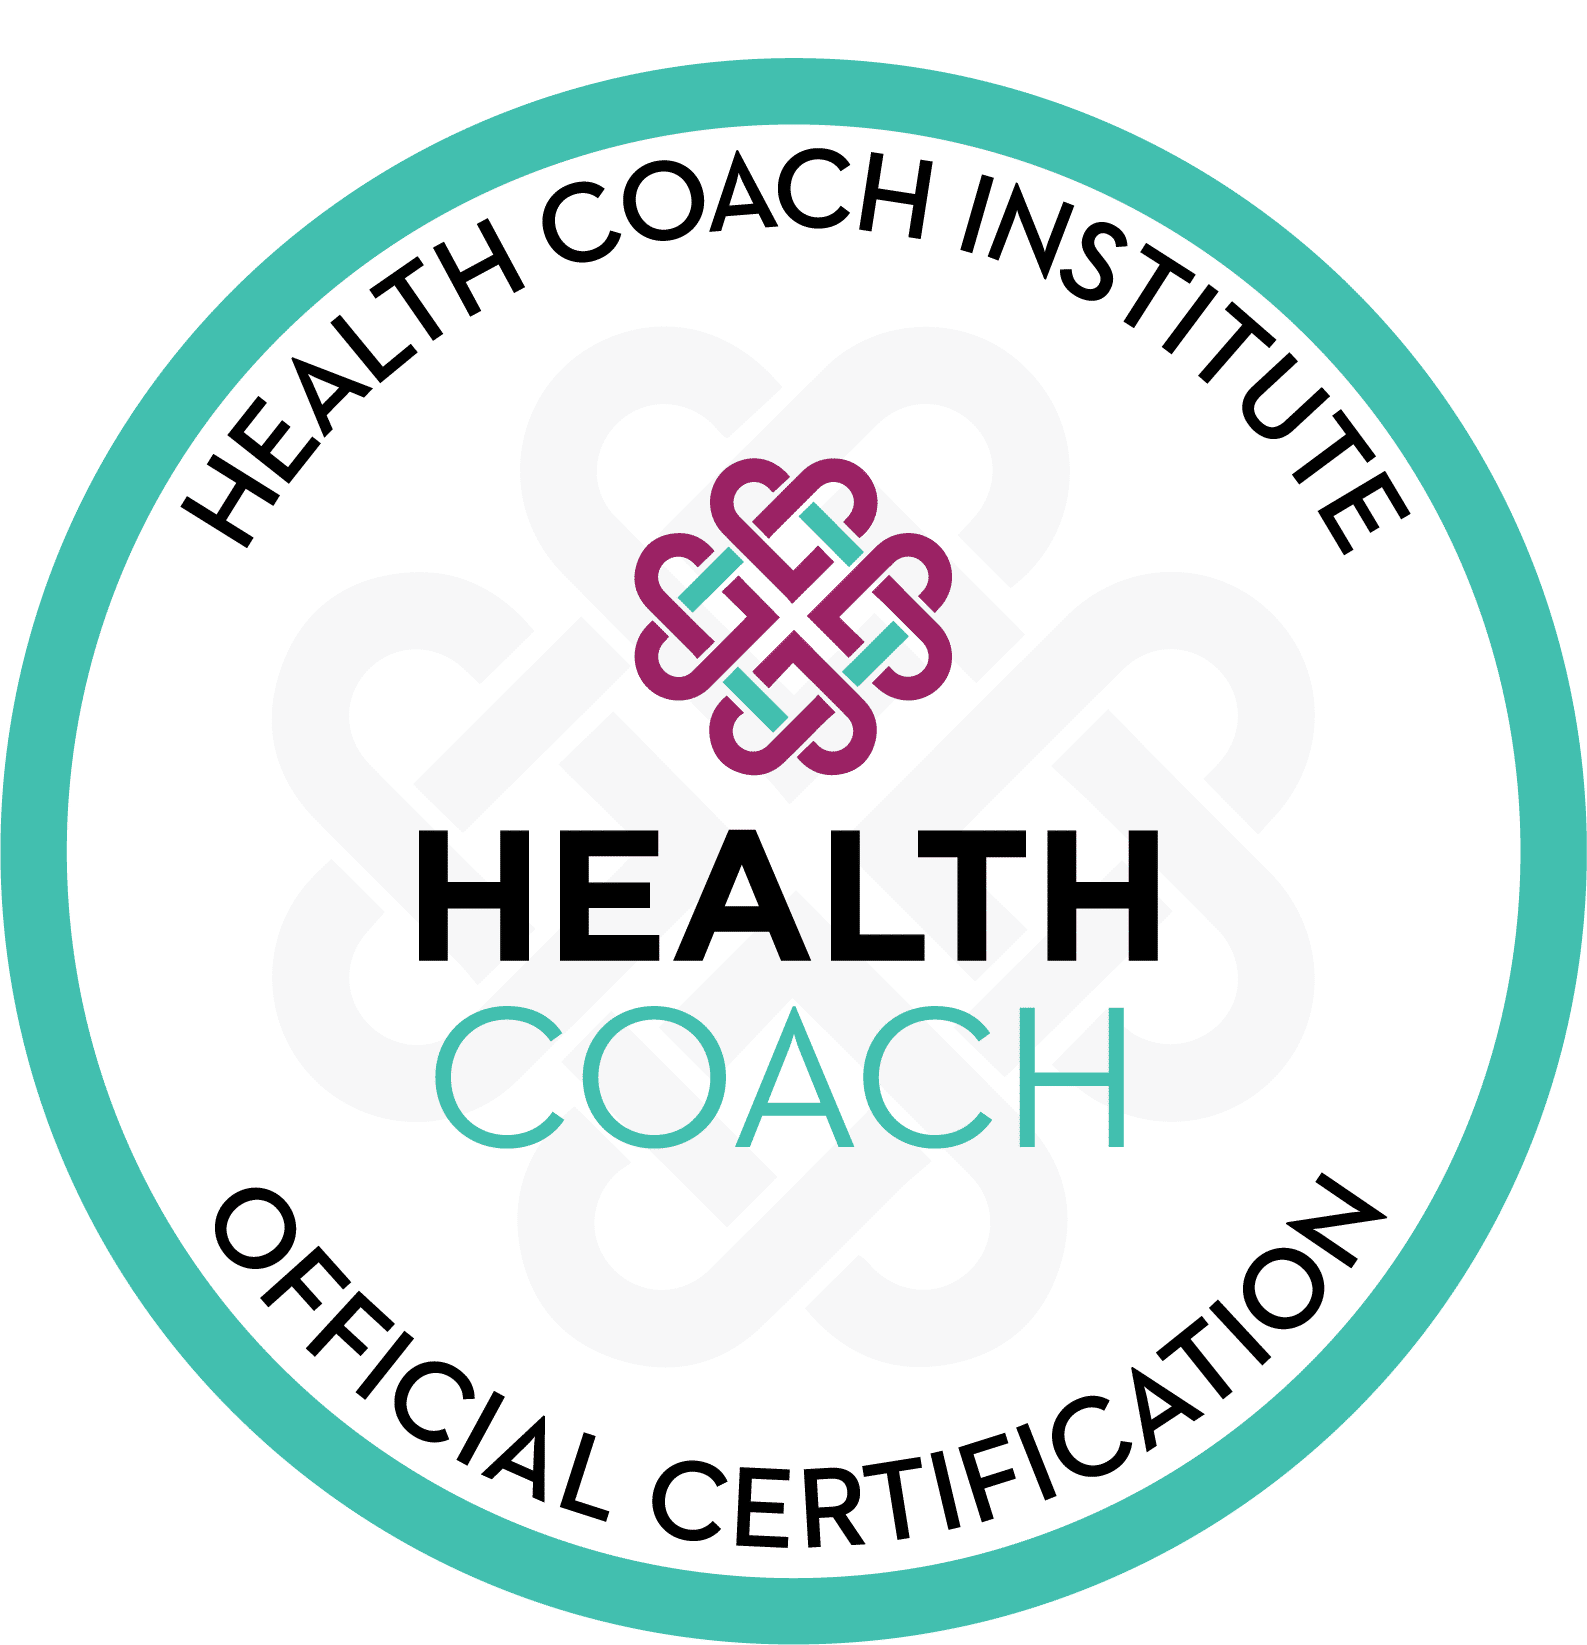 sites/37887149/bhc_certification_seal.png